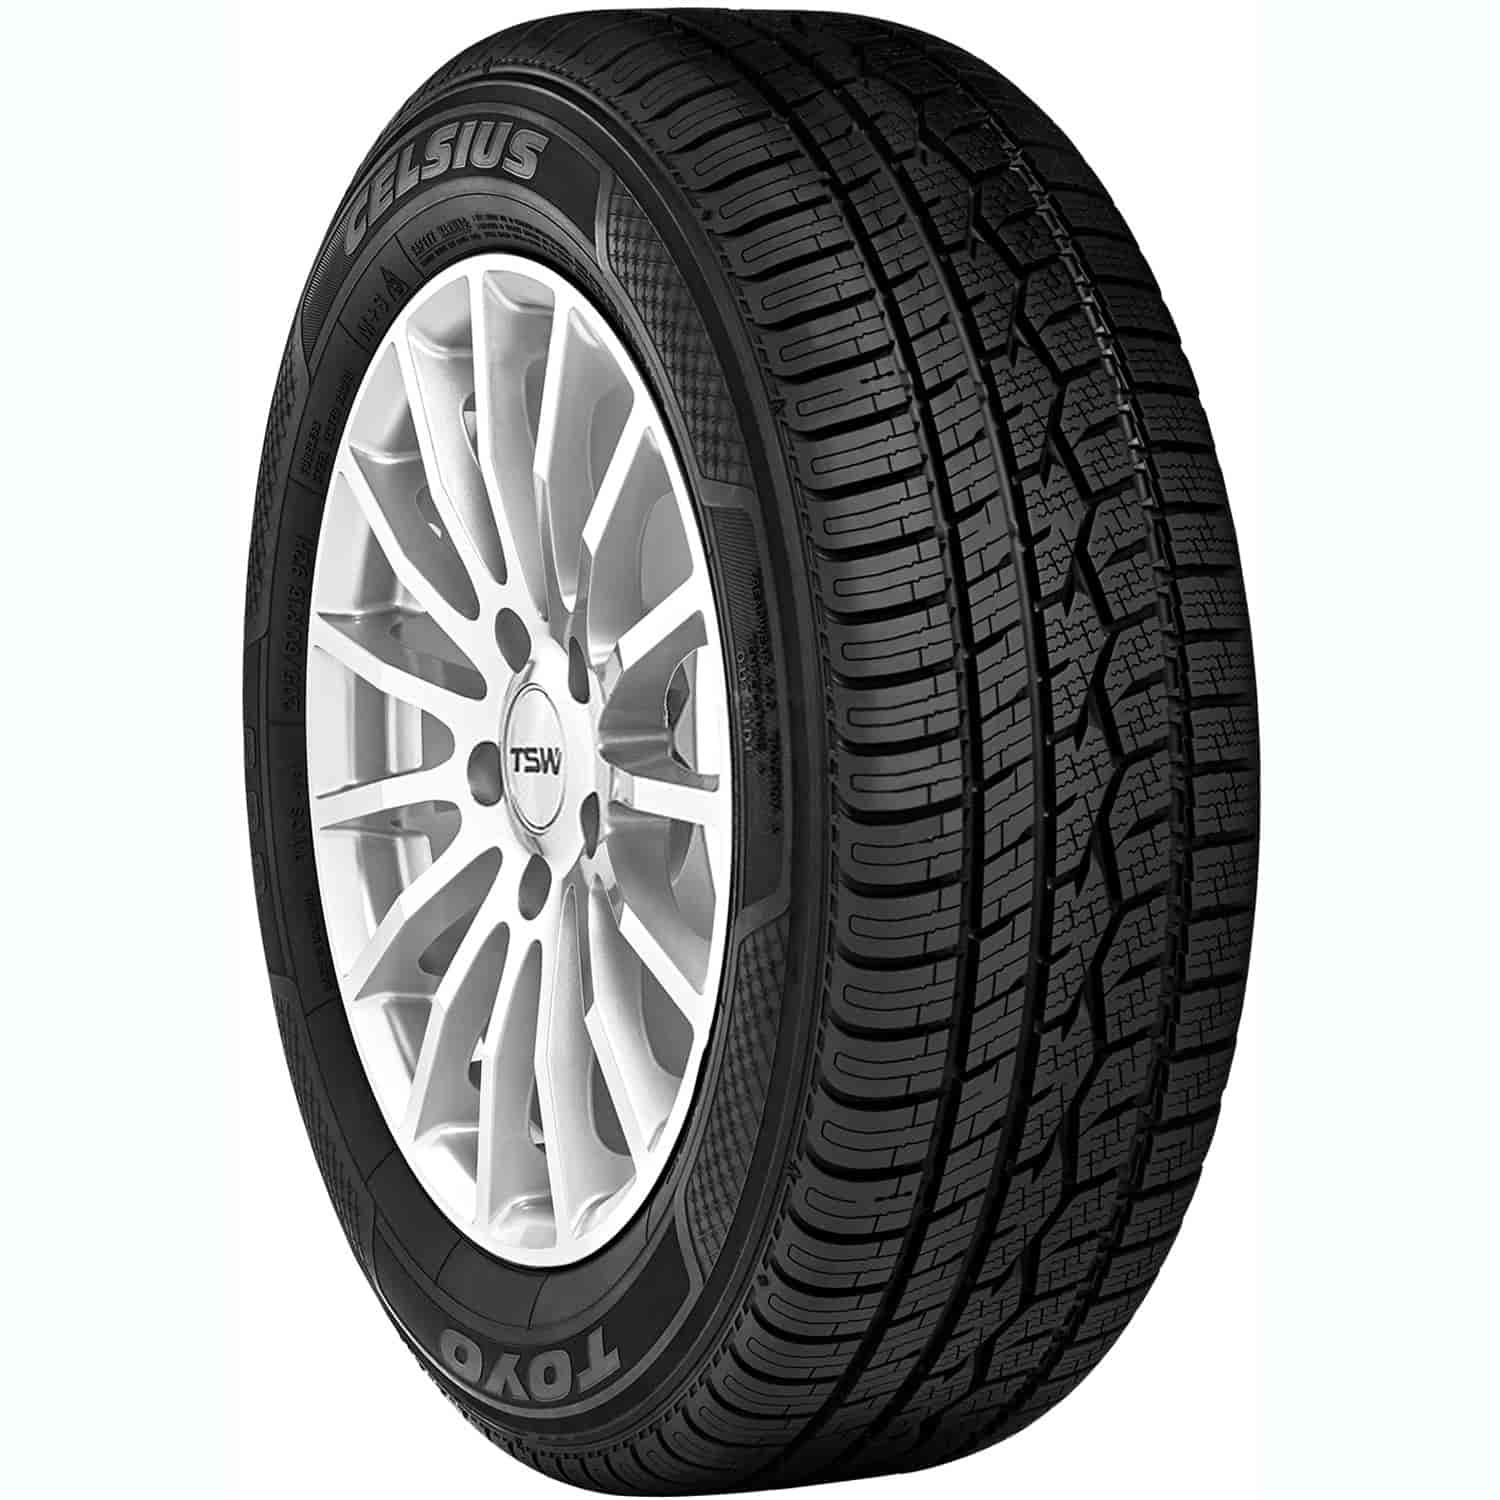 TOYO Tire 255/40R 17 94W PROXES RR Summer / Performance   eBay  Toyo Tires